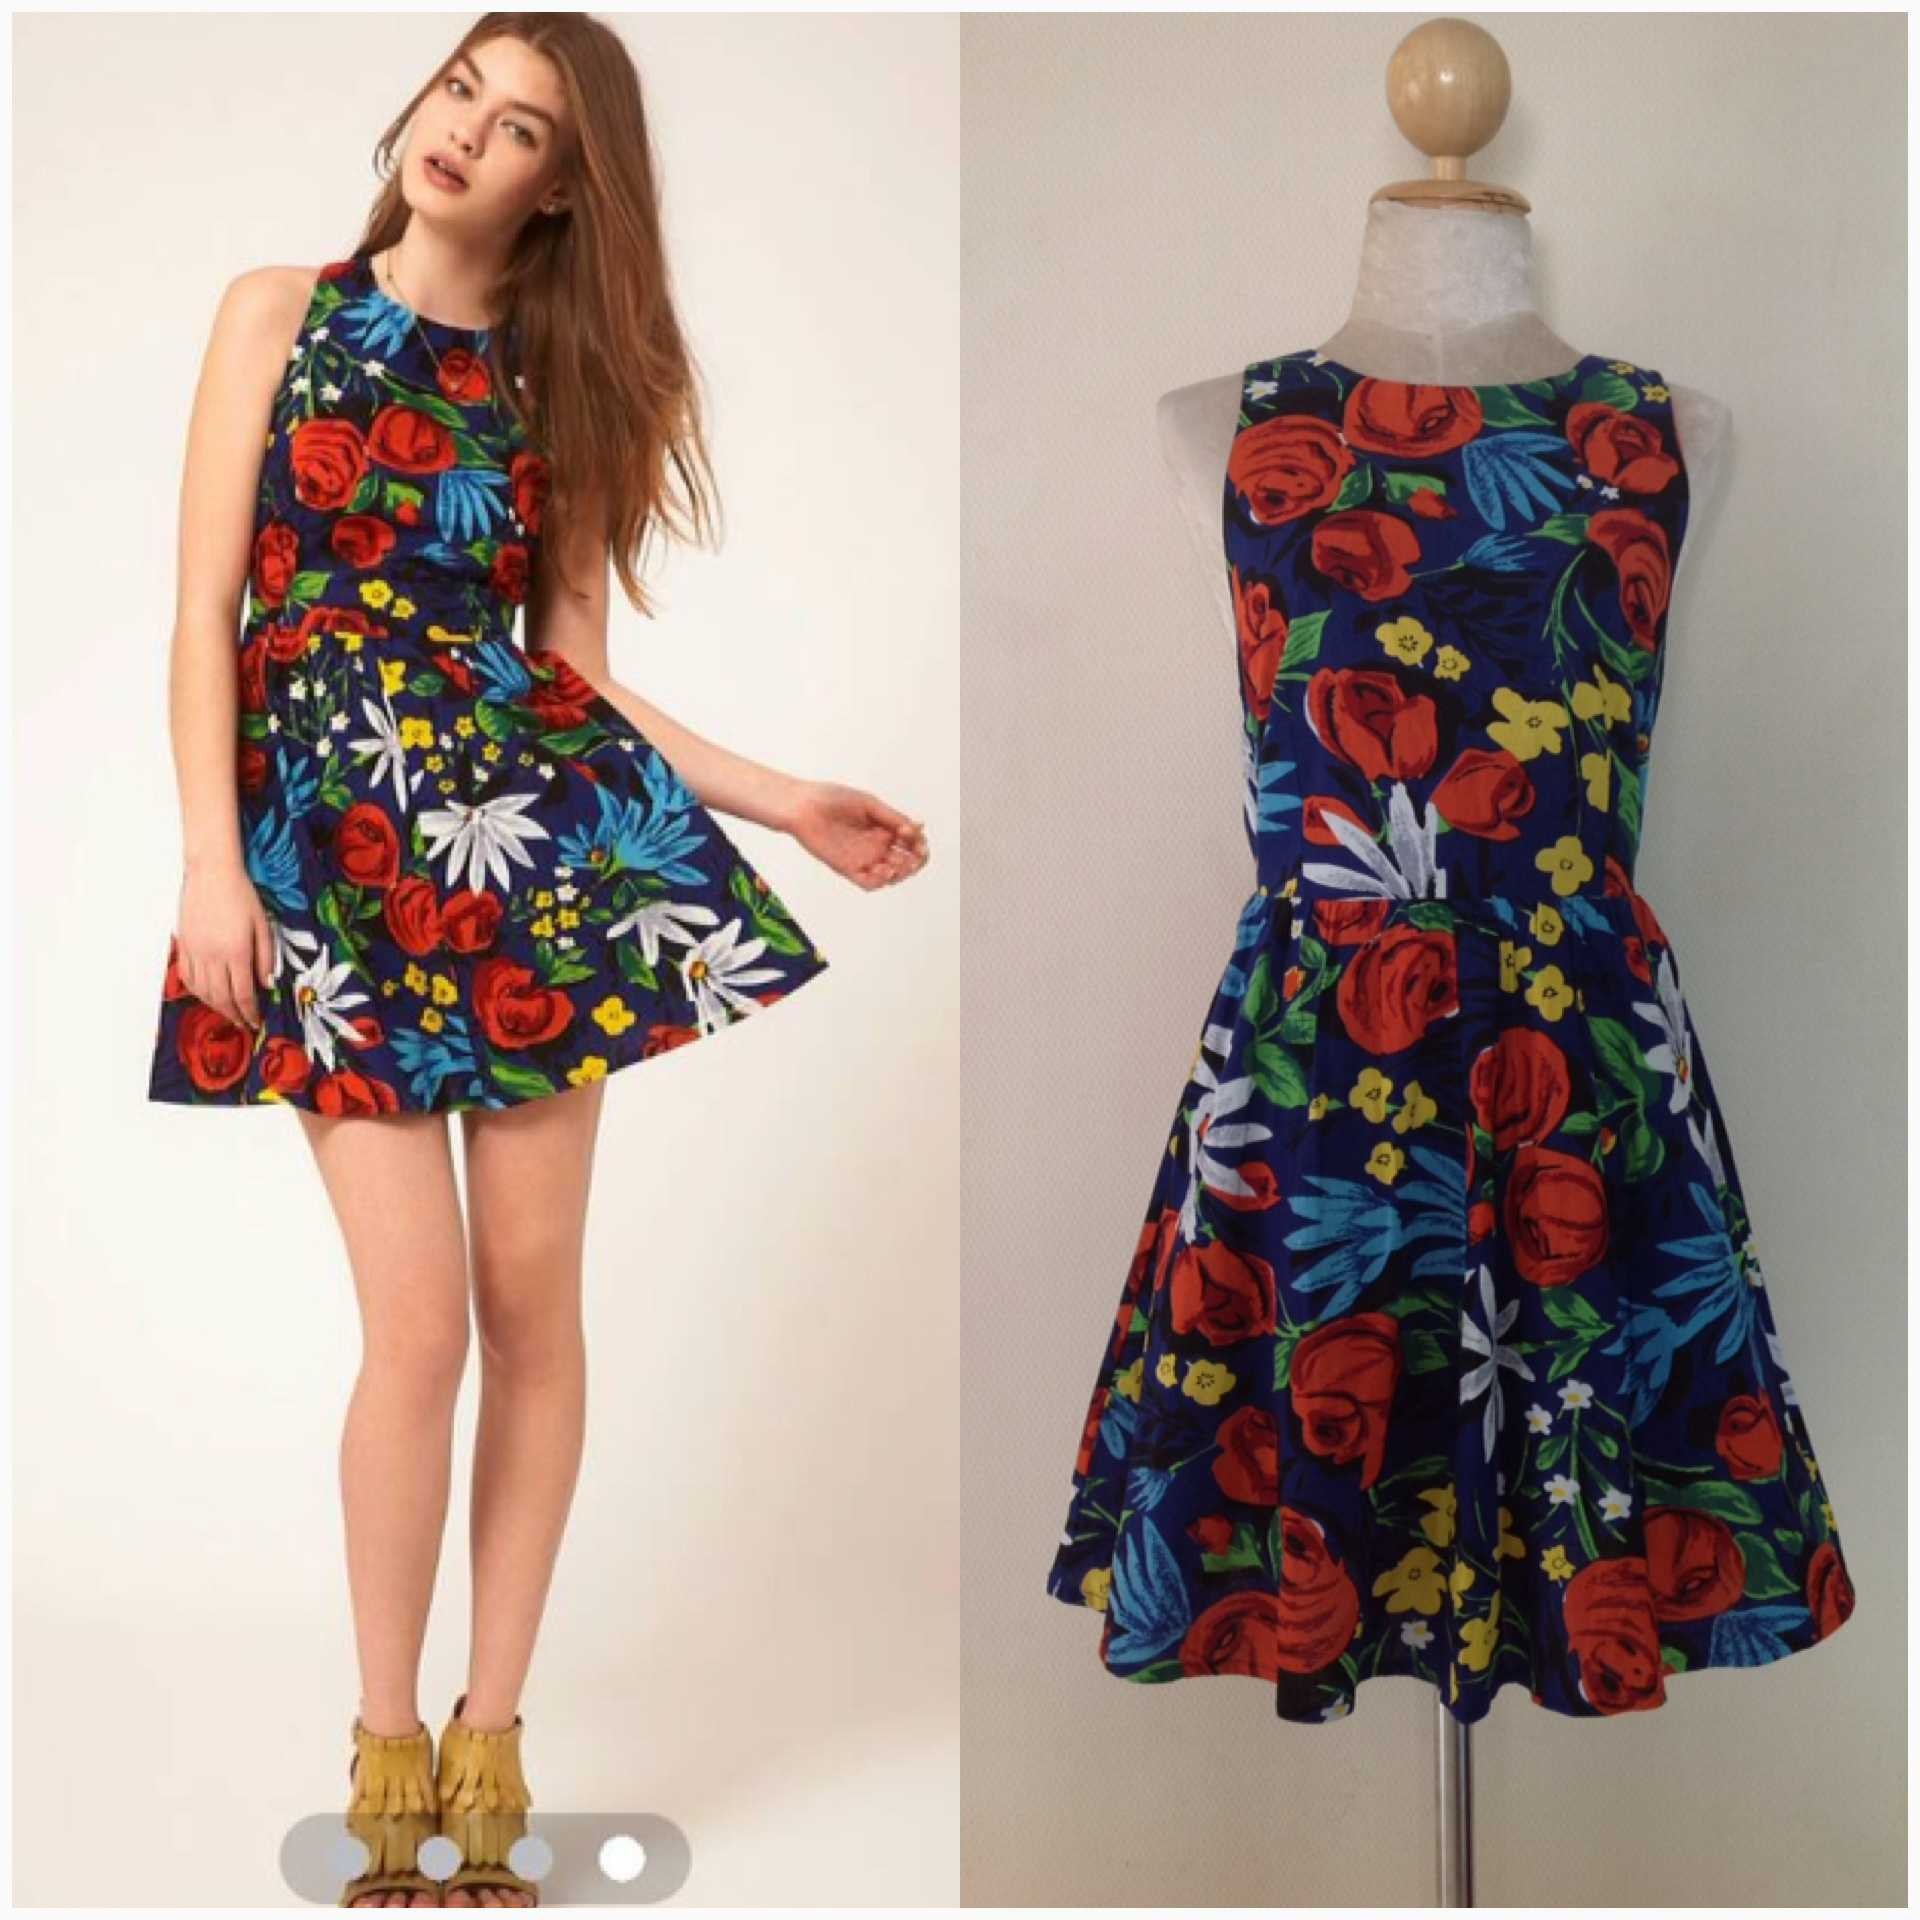 ASOS Flower Dress Size Uk10